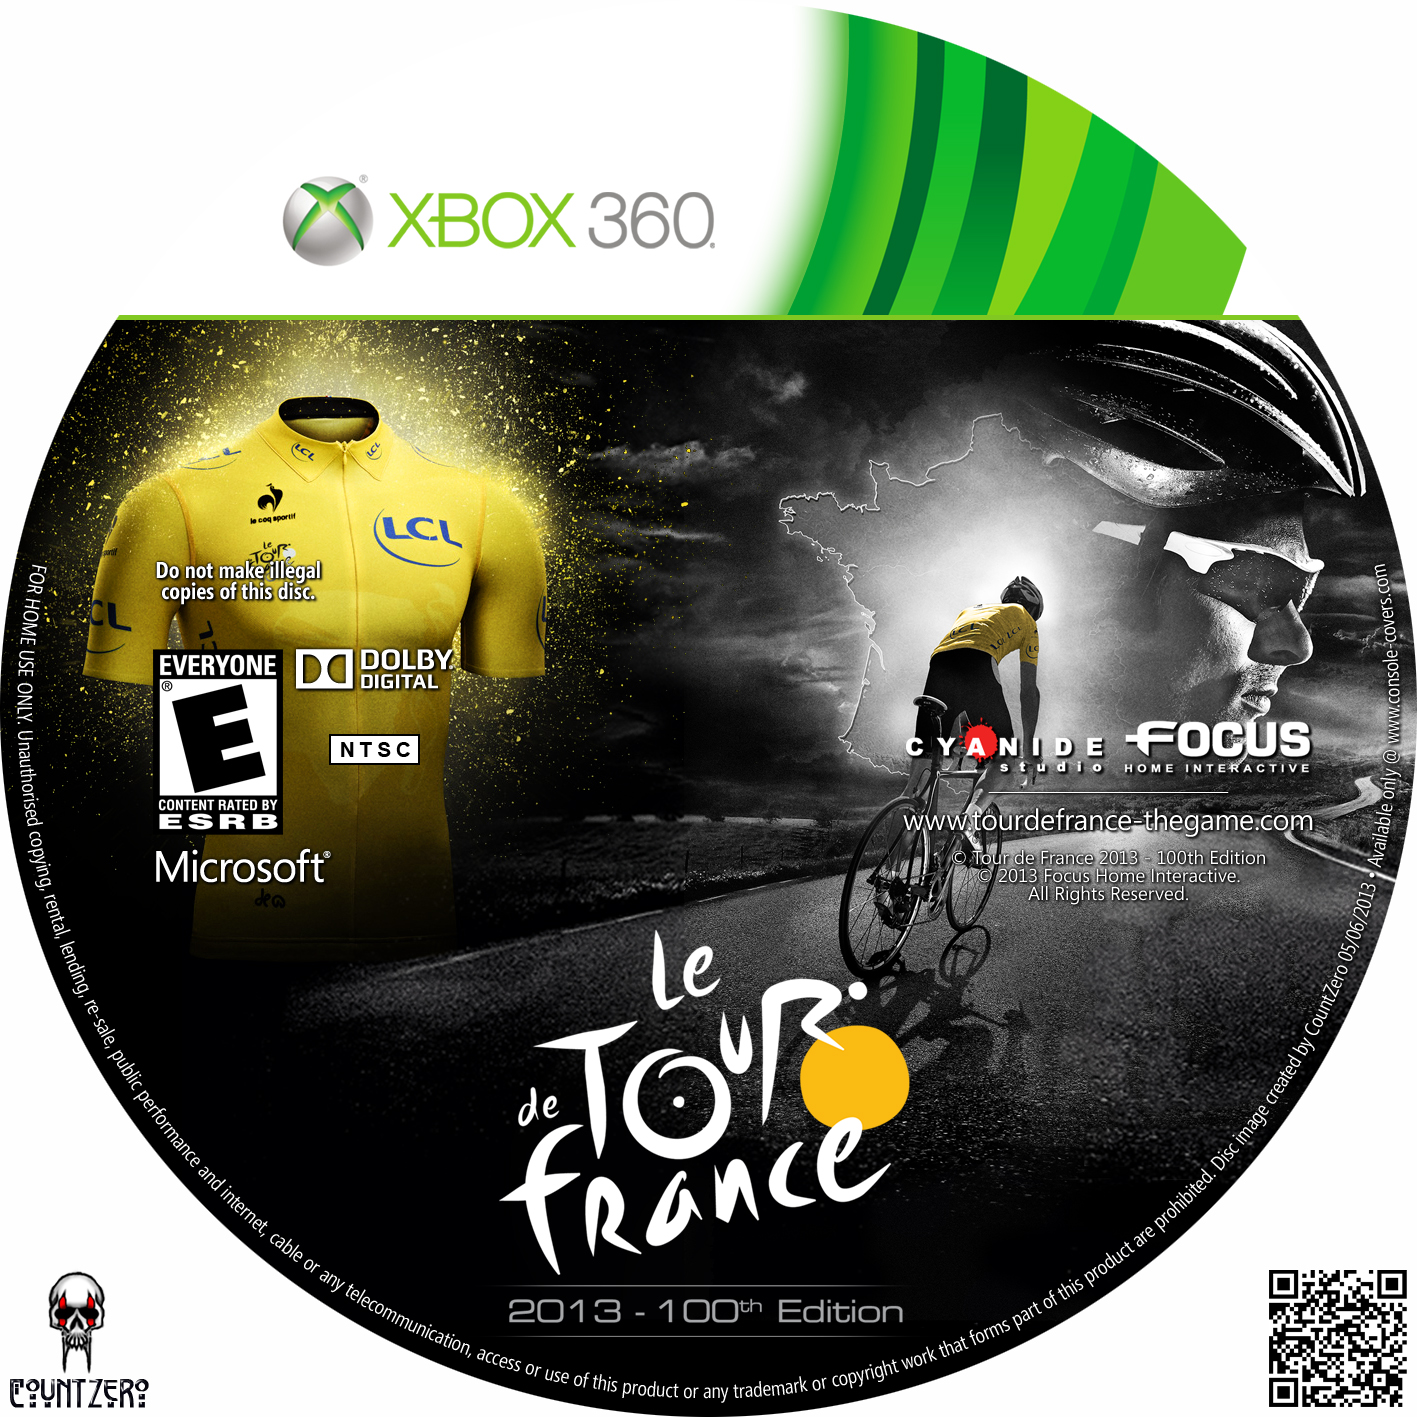 label le tour de france 2013 100th edition xbox 360 gamecover capas customizadas para dvd e. Black Bedroom Furniture Sets. Home Design Ideas